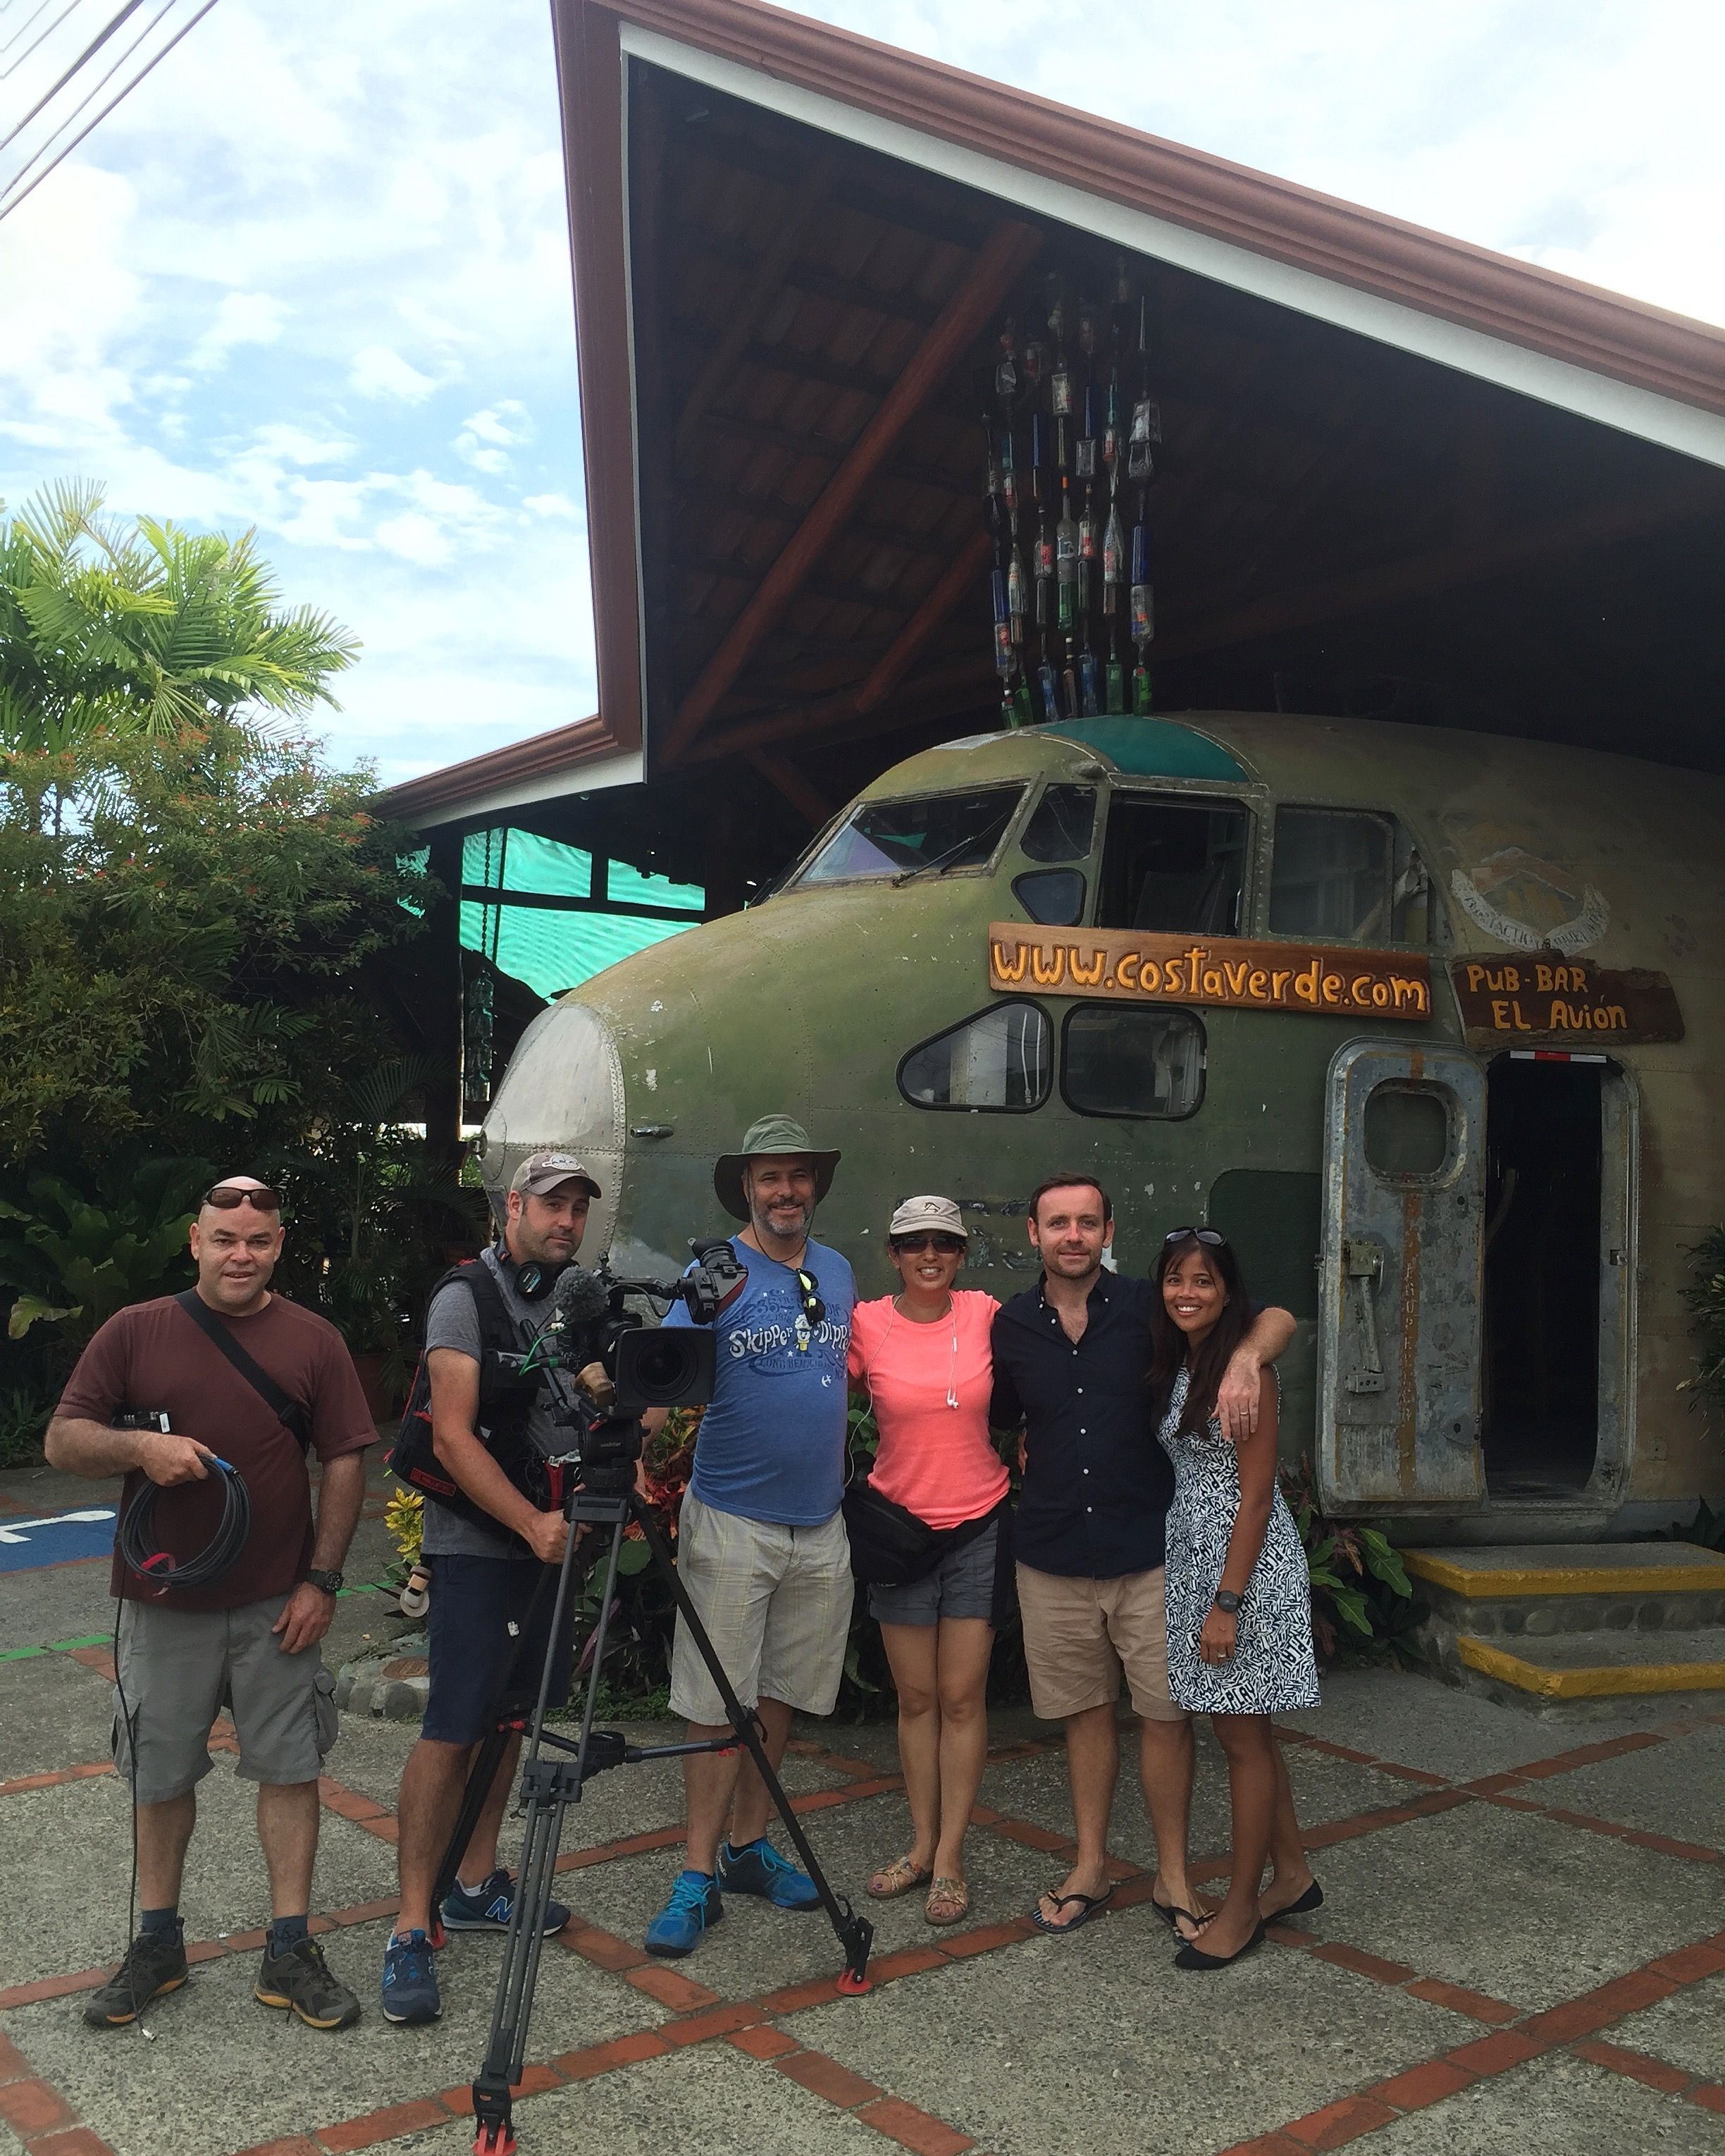 Just finished 5 days of filming in Manual Antonio for our 'House Hunters International' episode. Very challenging few days but enjoyed it lots! Awesome crew! #househuntersinternational #jackpotsportfishing #fishingincostarica #manuelantonio #costaricafishing #sportfishingincostarica #househunters